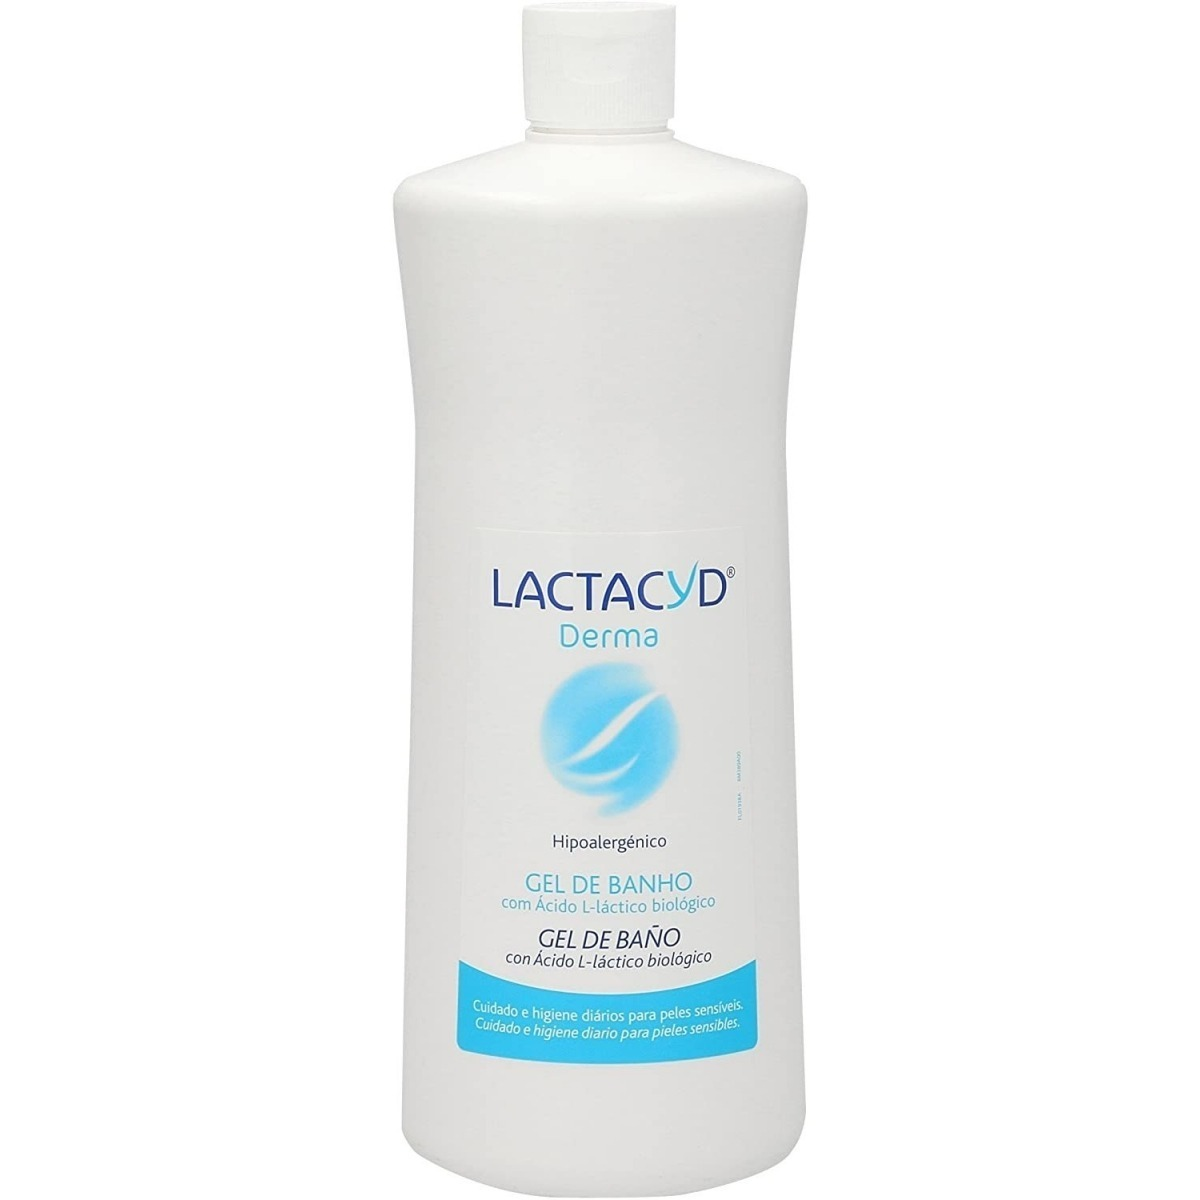 LACTACYDDERMAGELFISIOLOGICO1L I1